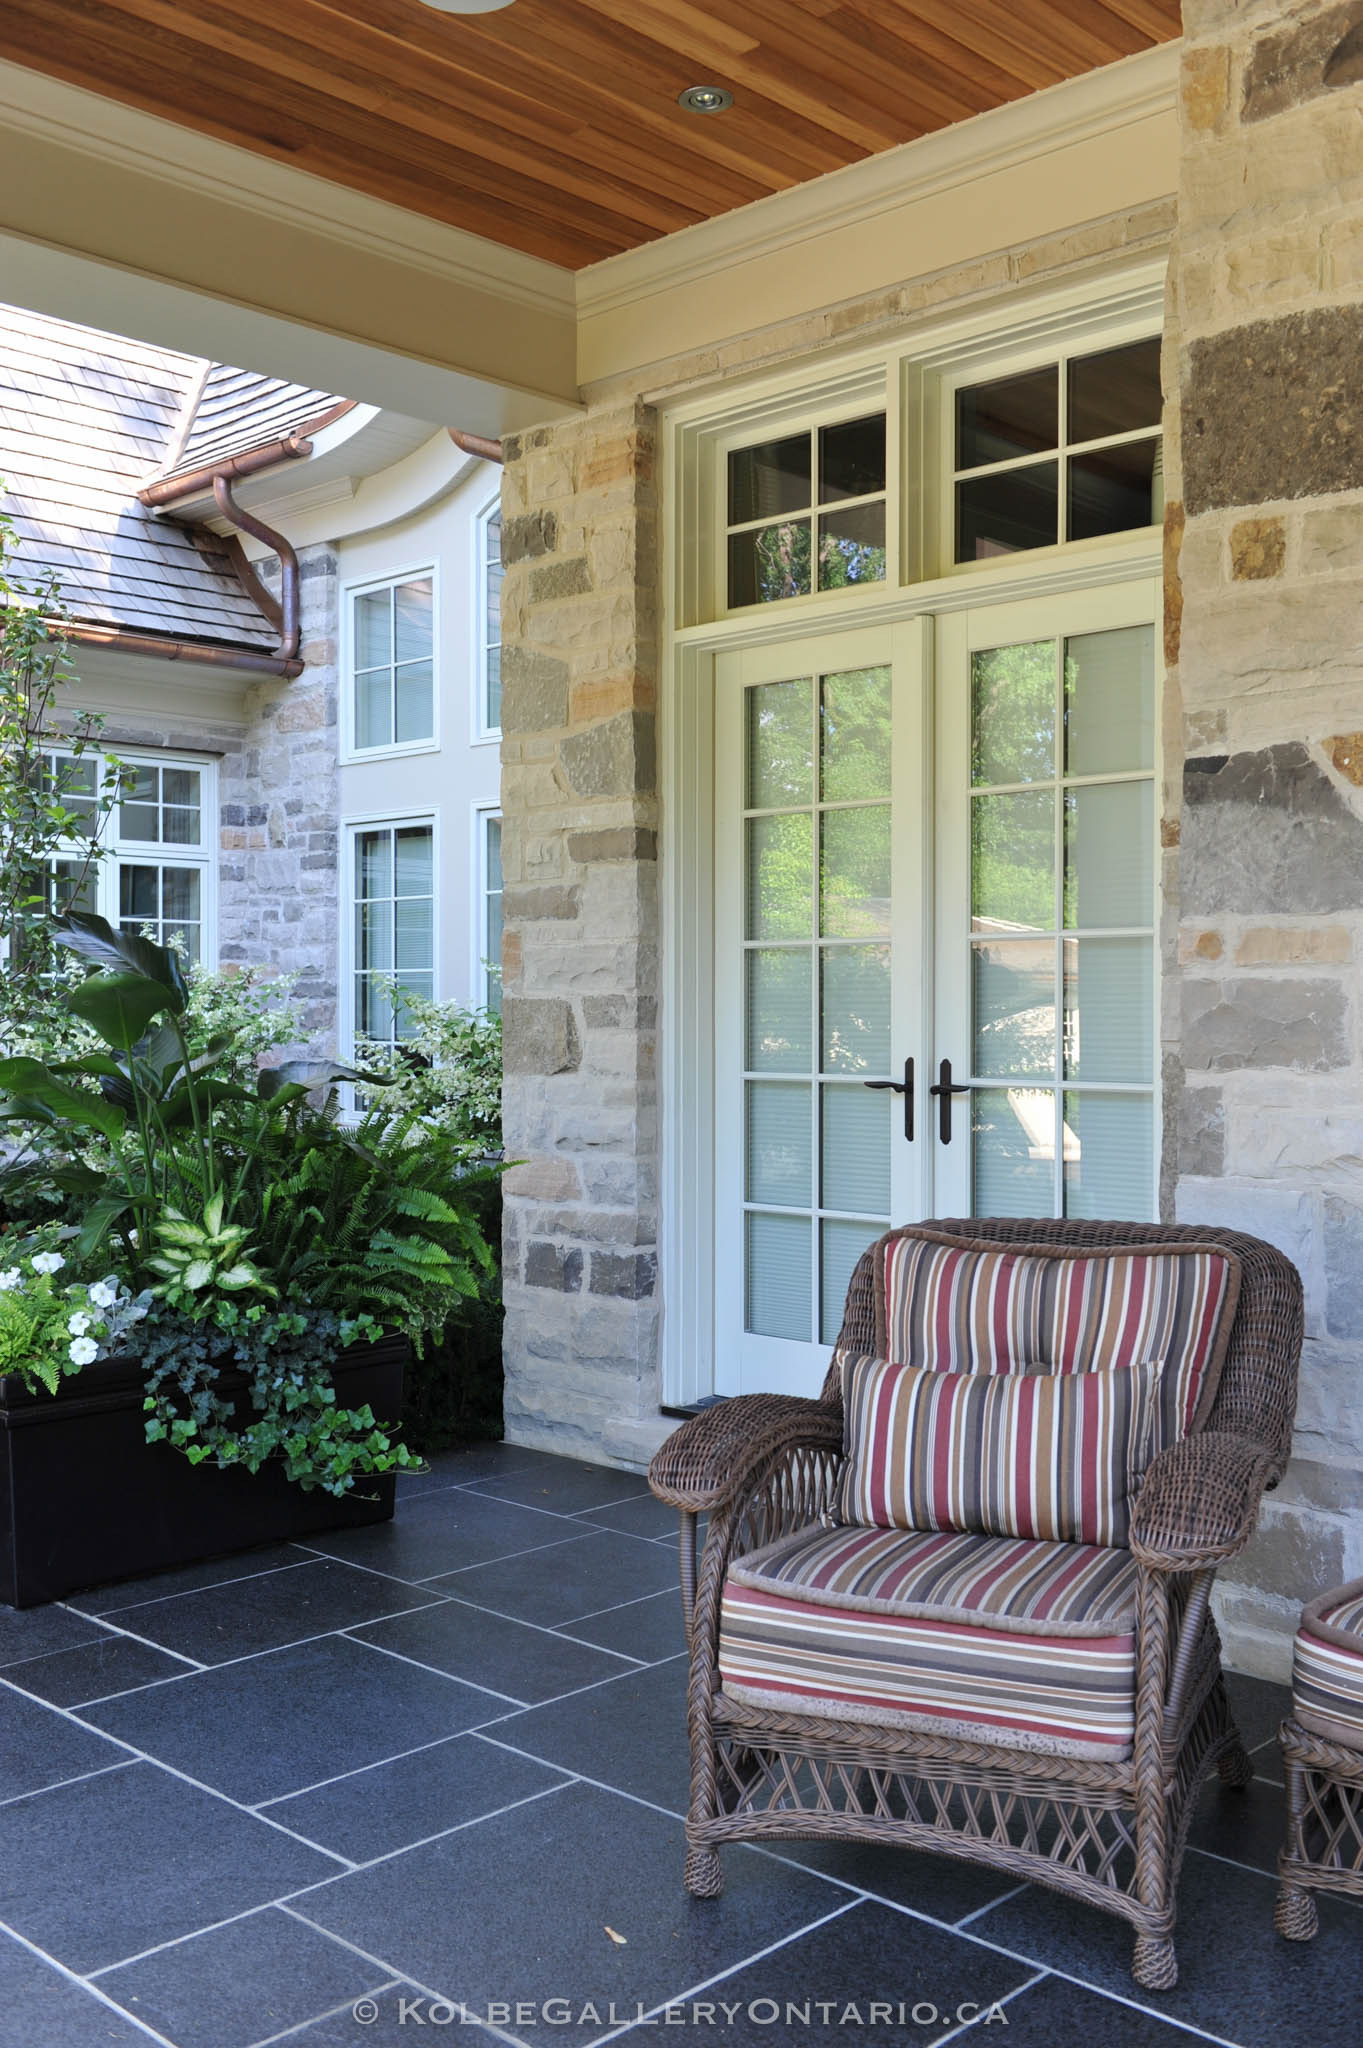 KolbeGalleryOntario.ca-windows-and-doors---20120727-055915